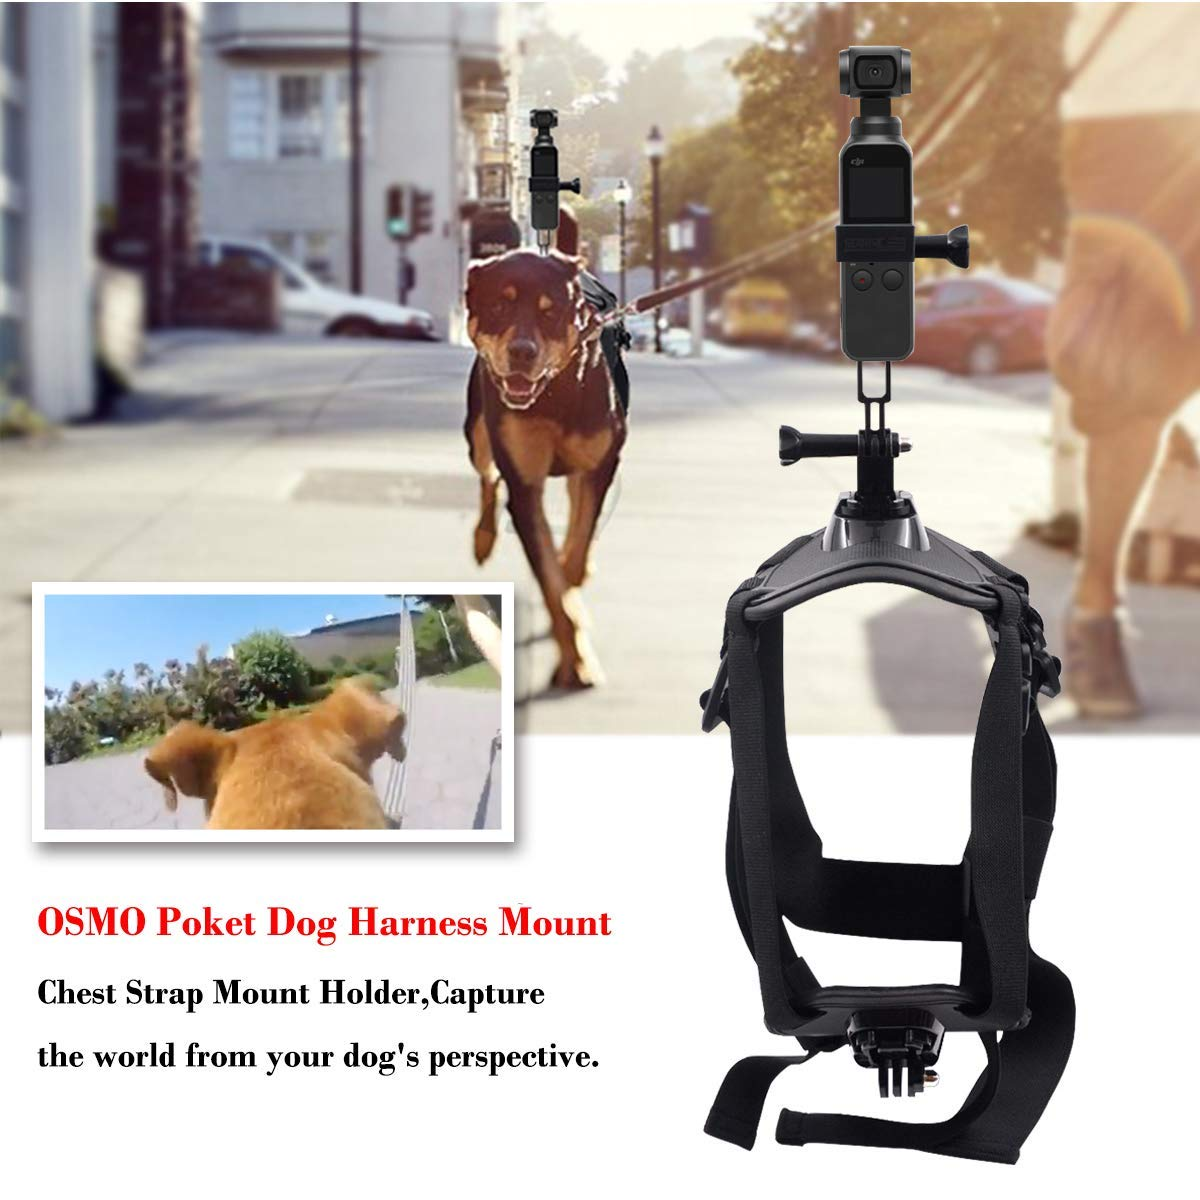 BeesClover Dog Harness Mount Chest Strap Mount Holder Pet Harness Adjustable Outdoor Pet Vest for DJI OSMO Pocket Hero 6/5 /5/4/3+ Session DBPOWER AKASO Sony Sports DV etc. Camera by BeesClover